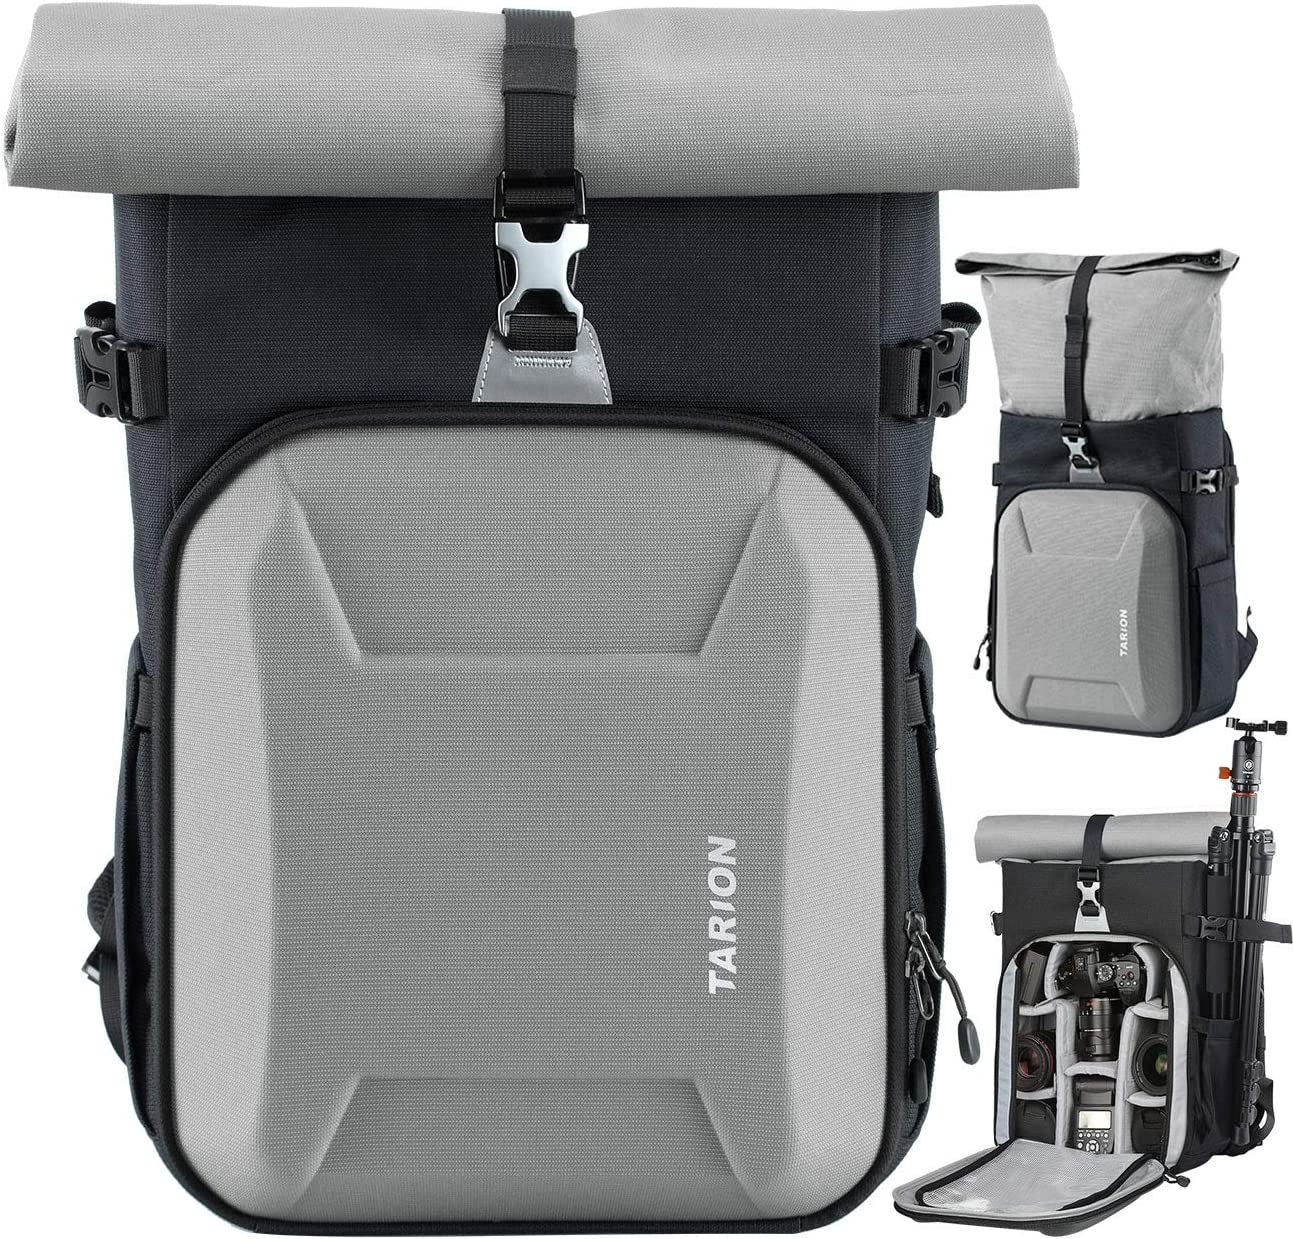 TARION XH Camera Bag Hardcase Camera Case Roll Top Camera Backpack | 15